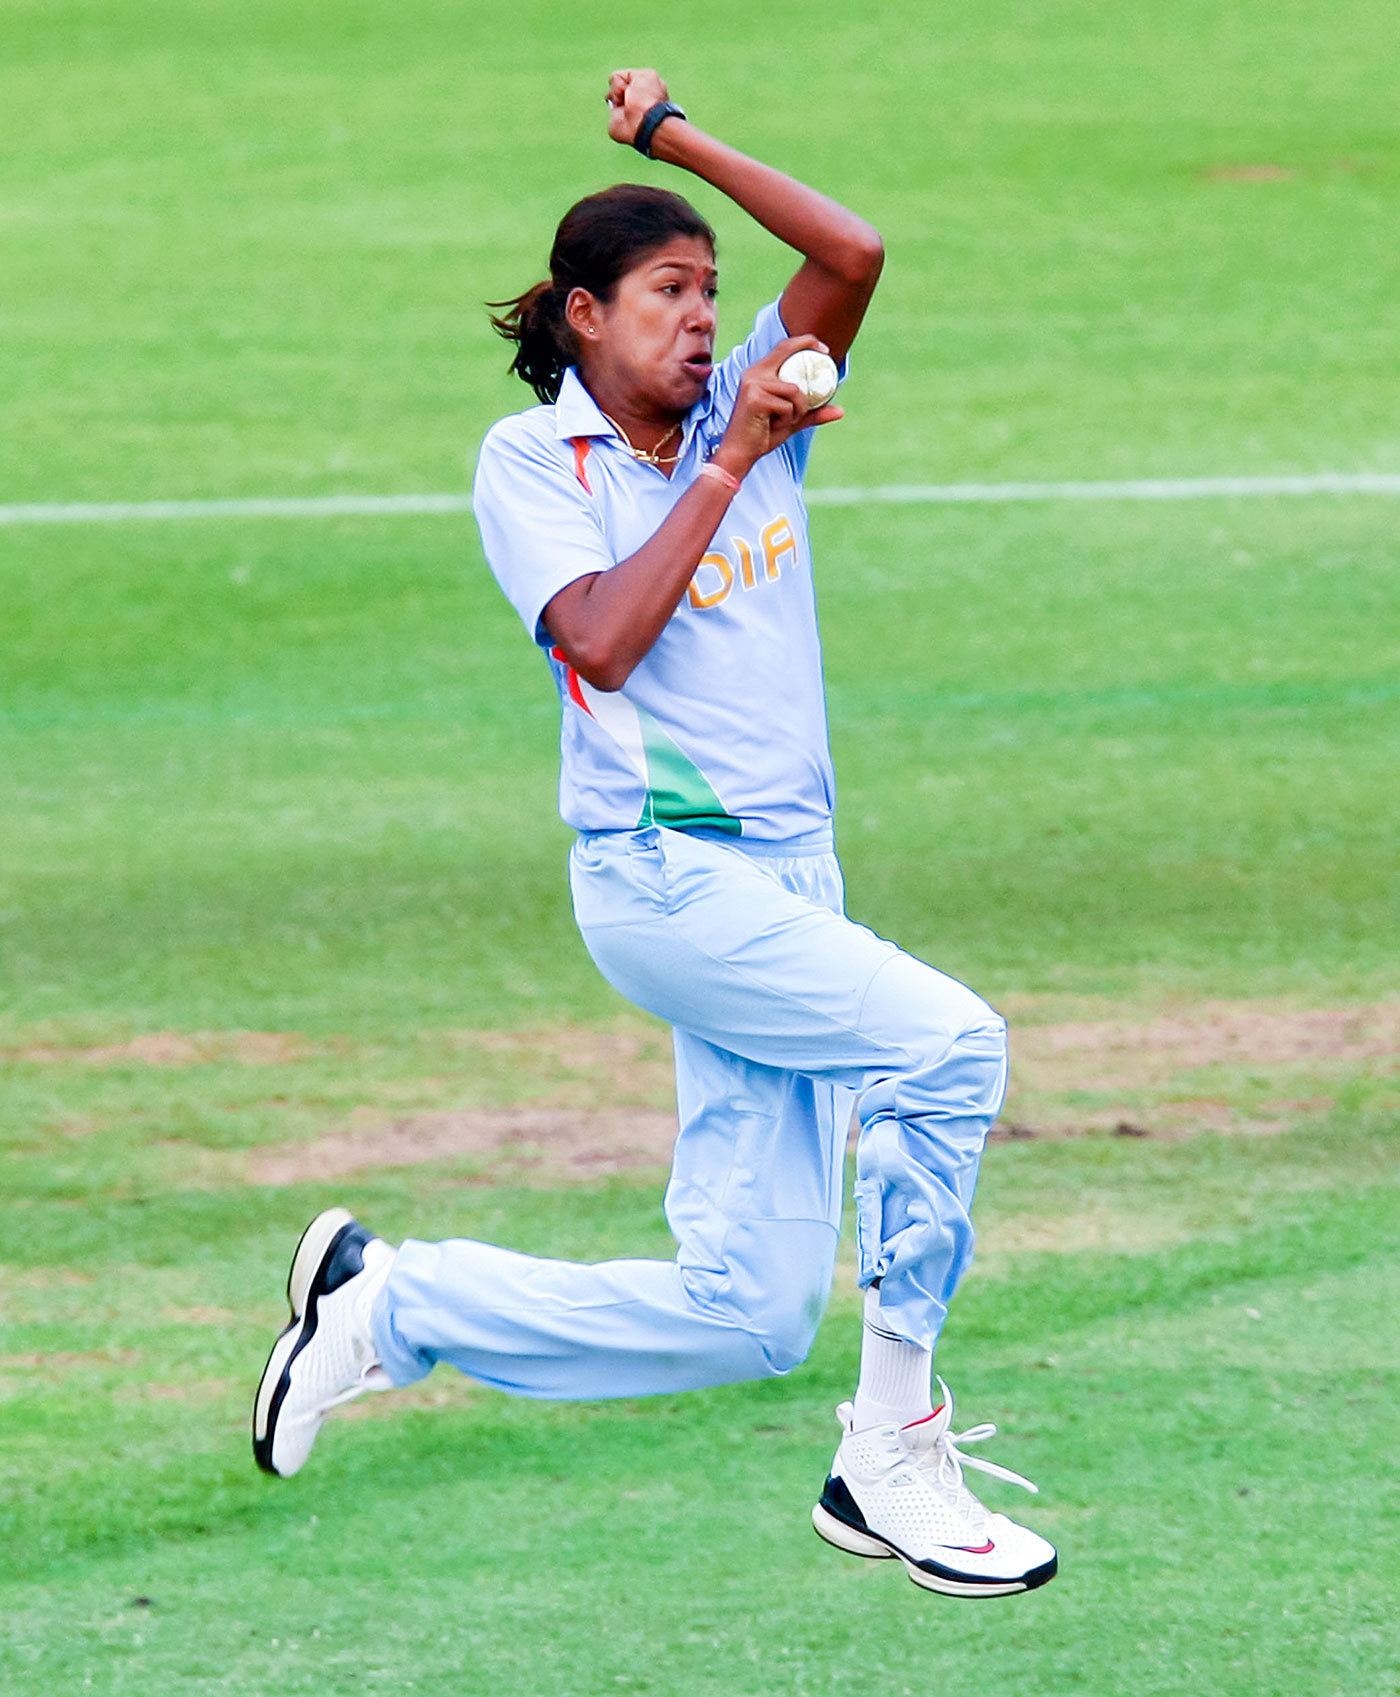 Speed thrills: Goswami is recognised as one of the fastest bowlers in the women's game